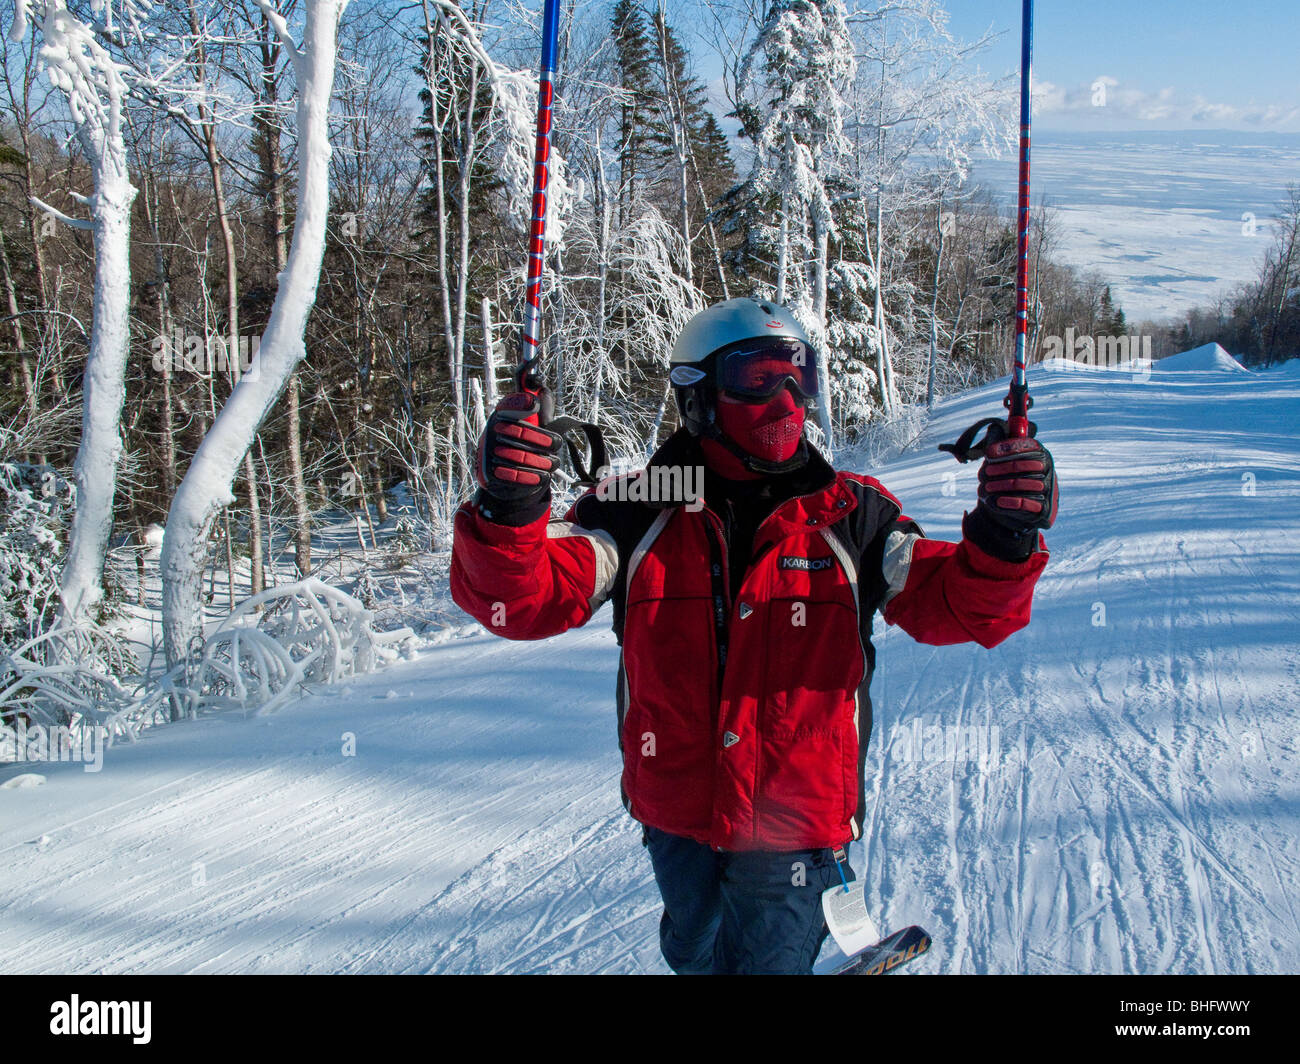 A downhill skier in red jacket with ski poles in the air at Le Massif in Quebec Canada - Stock Image